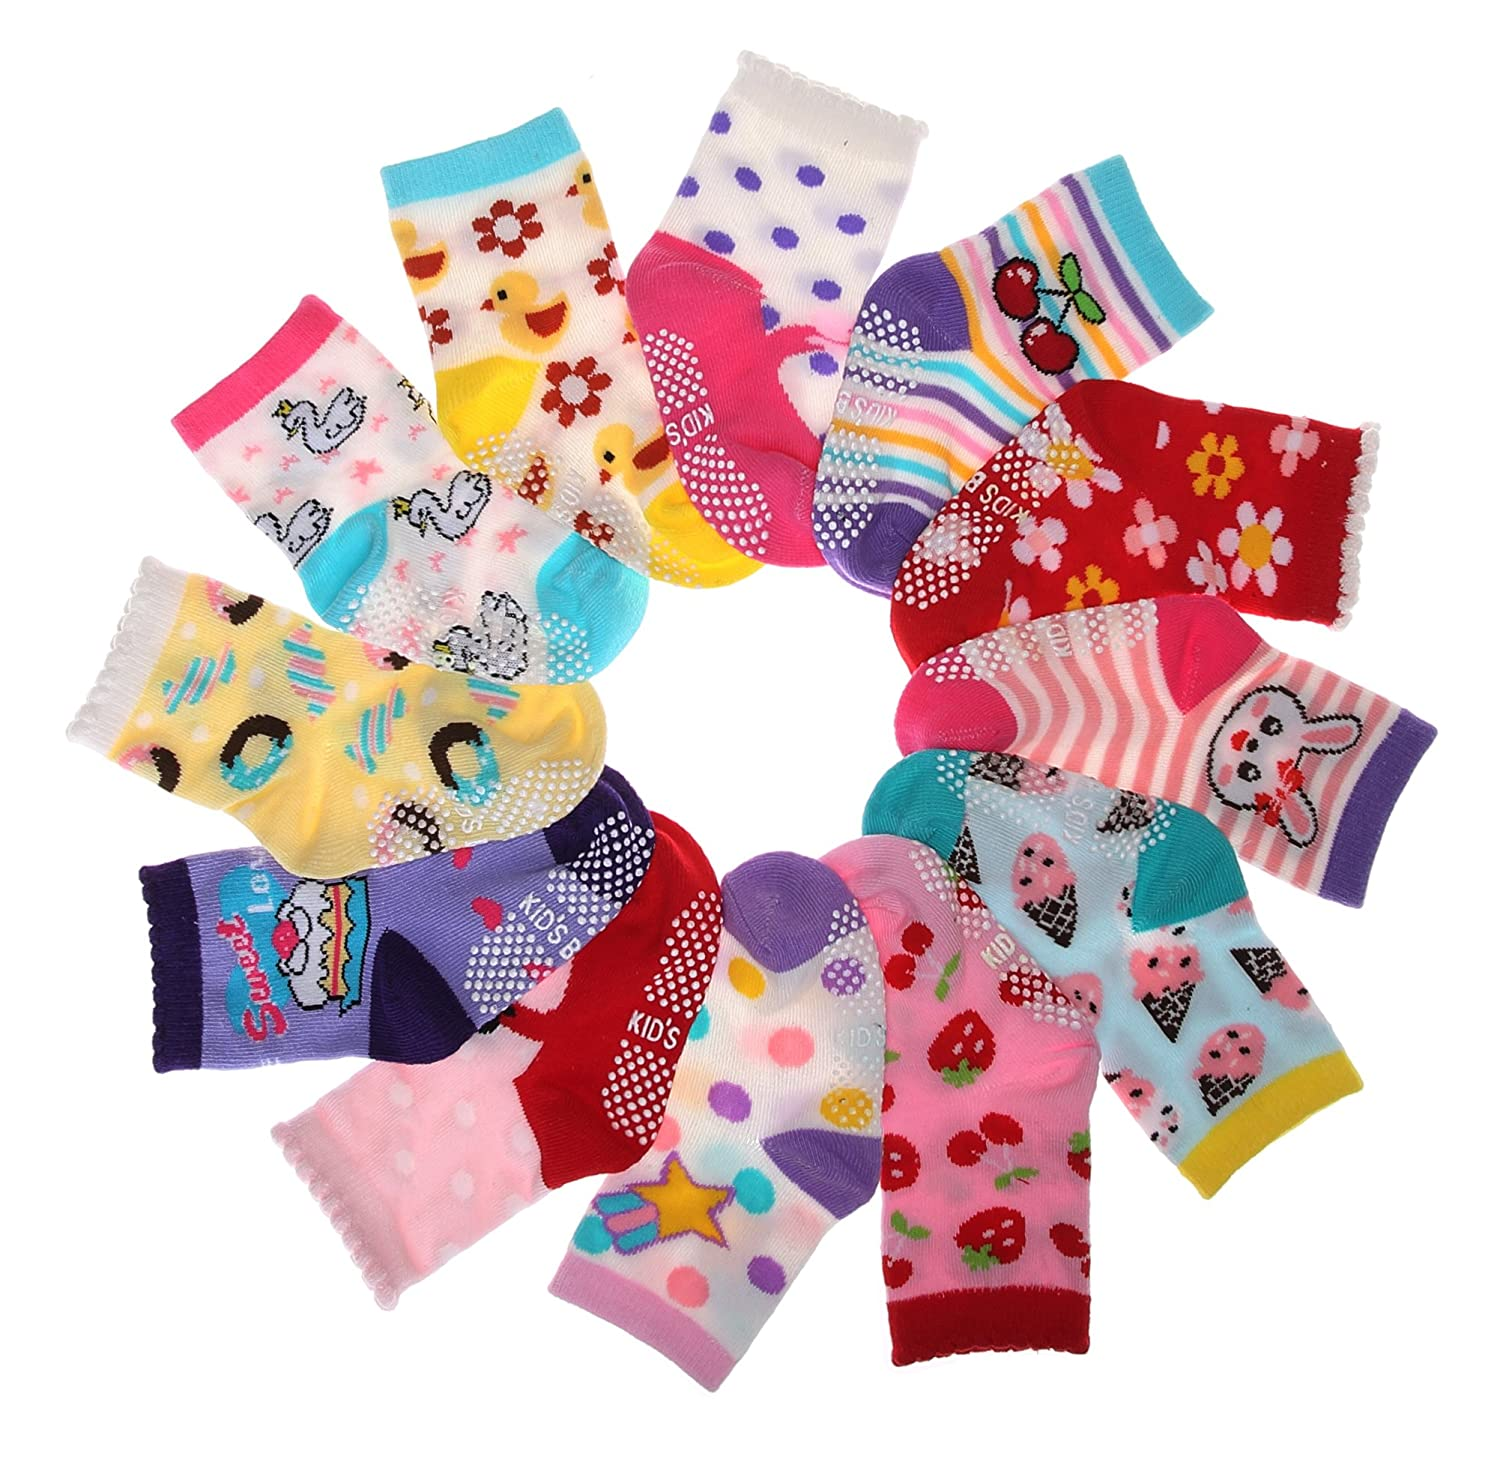 SDBING Baby's Color 6 Pair Thick Warm Cotton Socks (Anti-slip 1 to 3 Years Old)